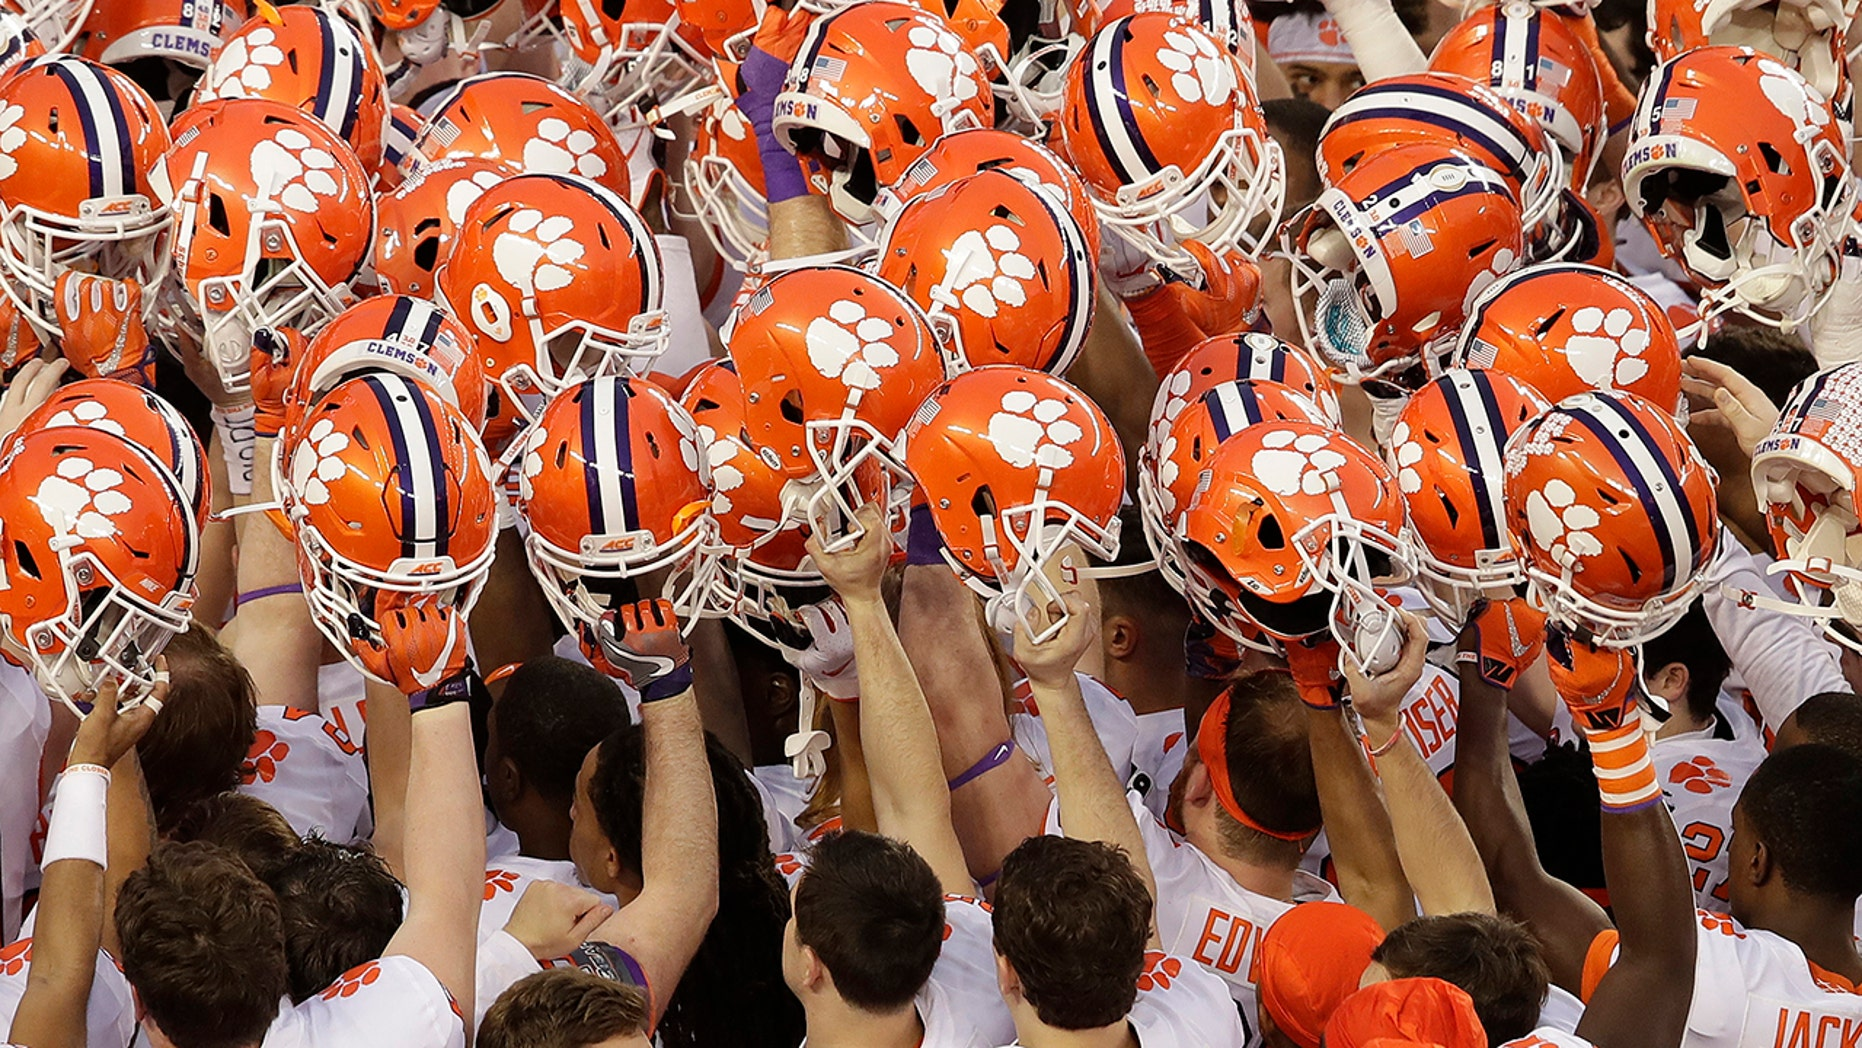 Westlake Legal Group CFB-Clemson-Tigers Swinney: No. 1 Clemson to play several new faces on D-line fox-news/sports/ncaa/clemson-tigers fox-news/sports/ncaa-fb fox-news/sports/ncaa fnc/sports fnc Associated Press article 7a140084-321a-5ca5-9be7-b4b167cb5bc7